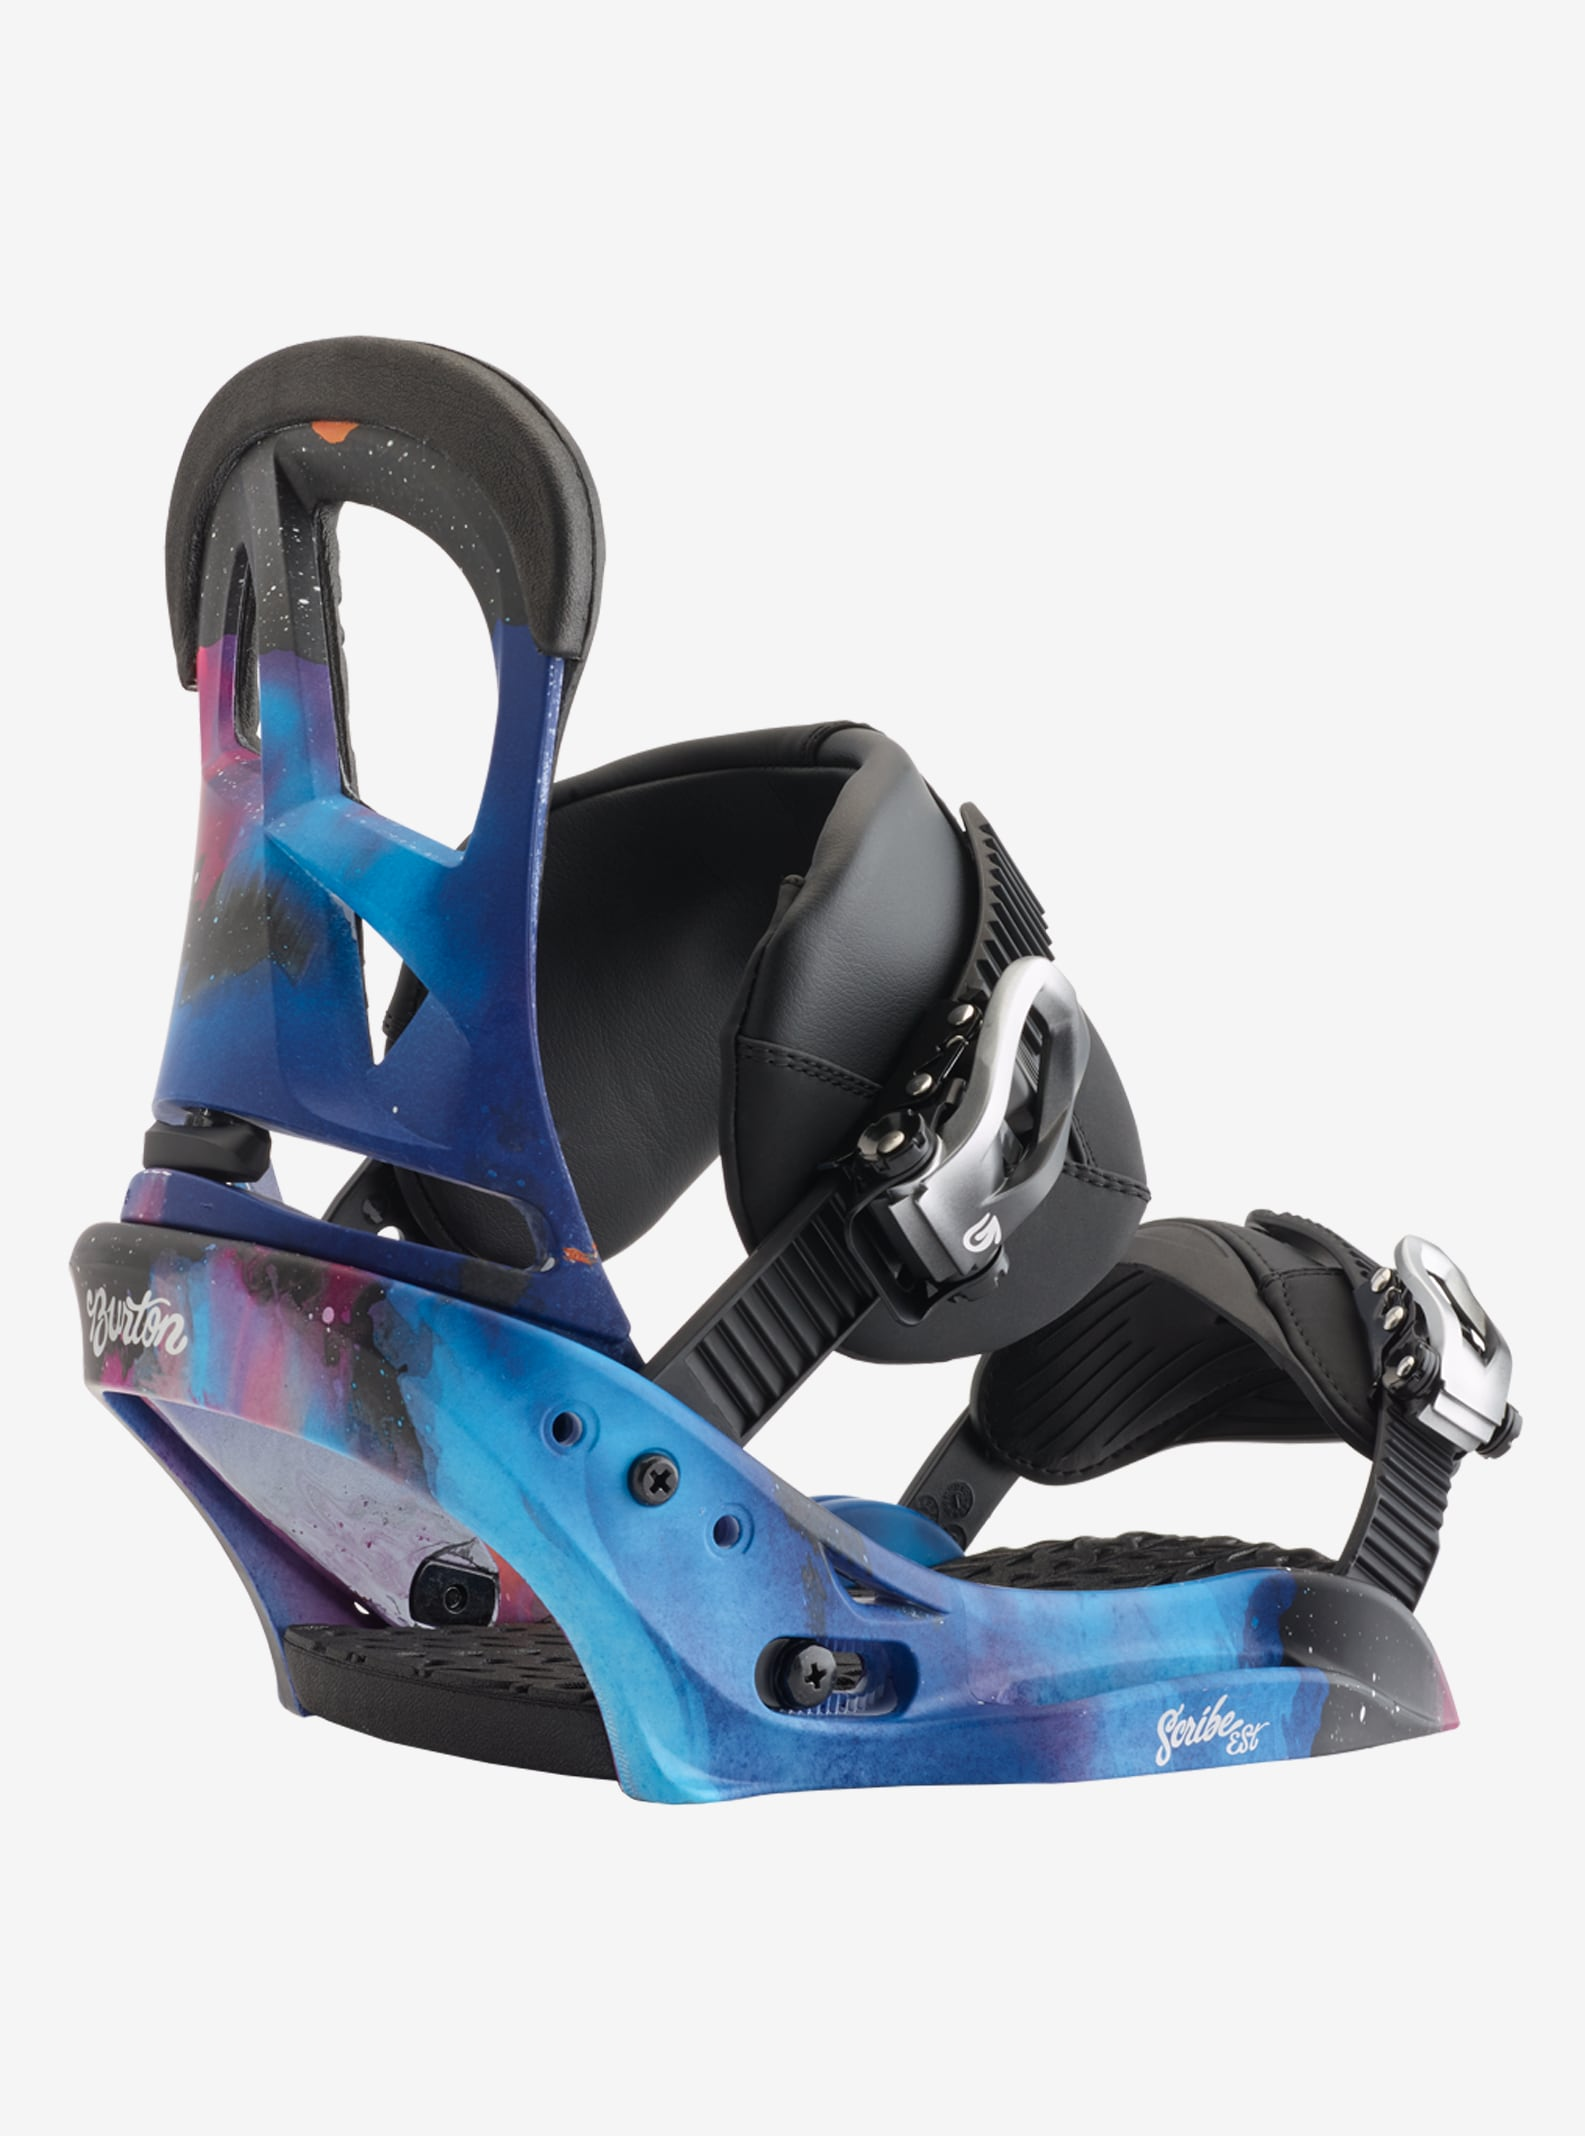 Women's Burton Scribe EST Snowboard Binding shown in Northern Lights